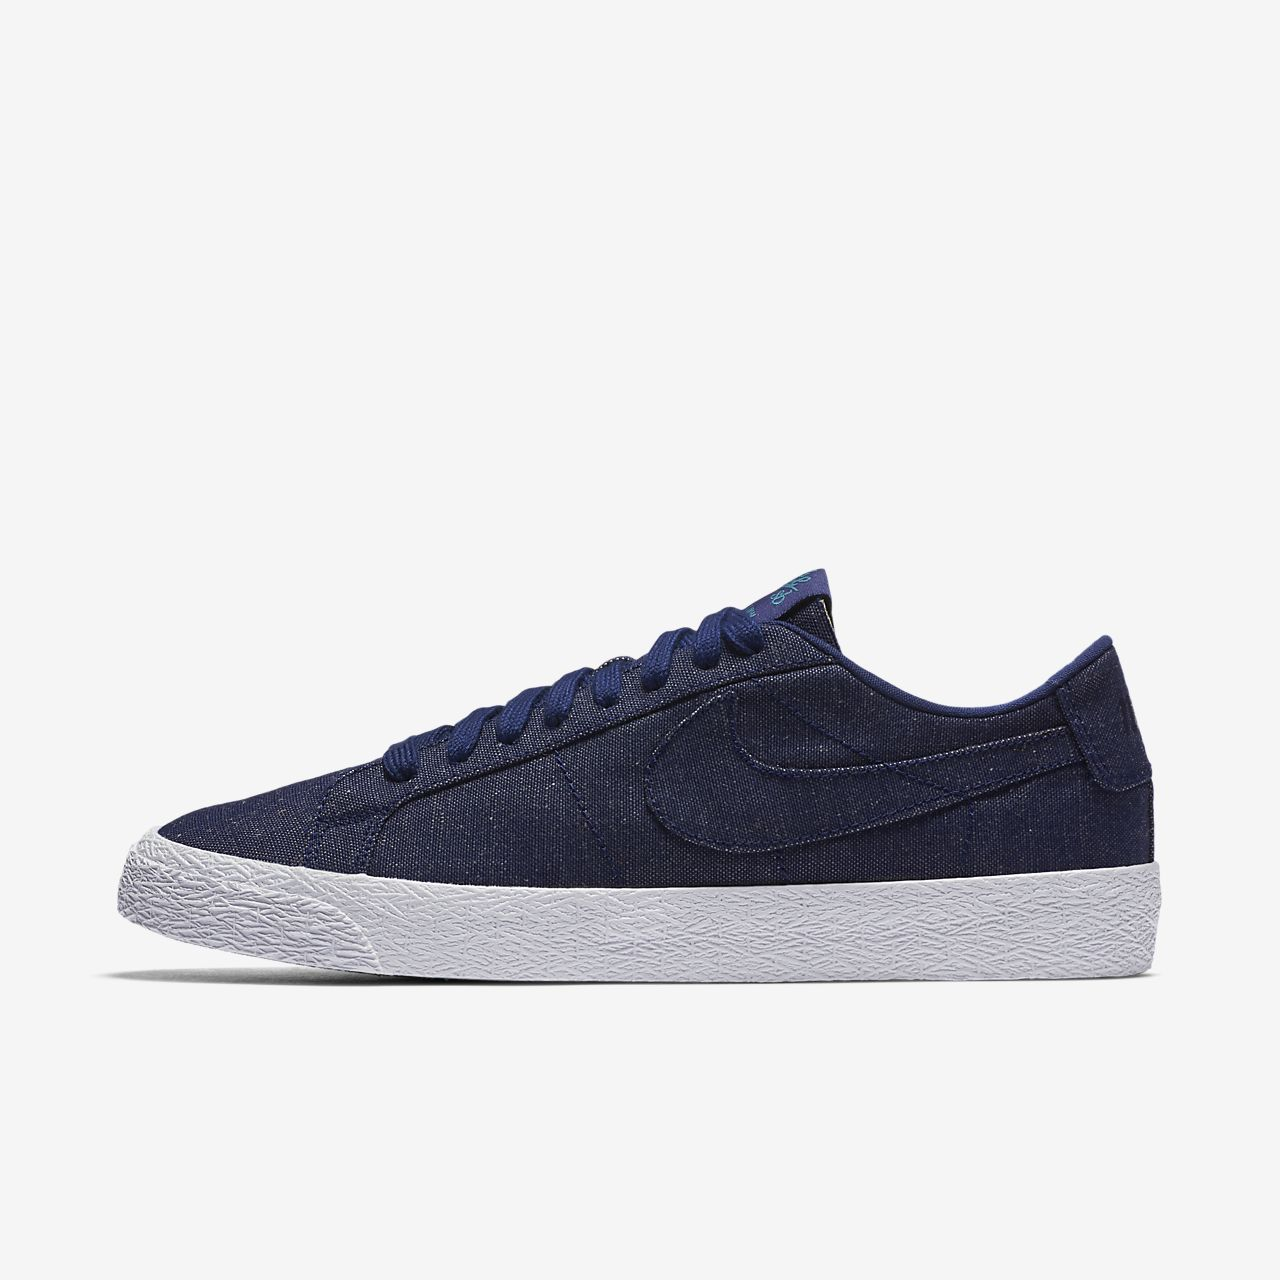 De Deconstructed Chaussure Zoom Nike Skateboard Low Canvas Pour Sb Blazer Homme 76ybYfgv